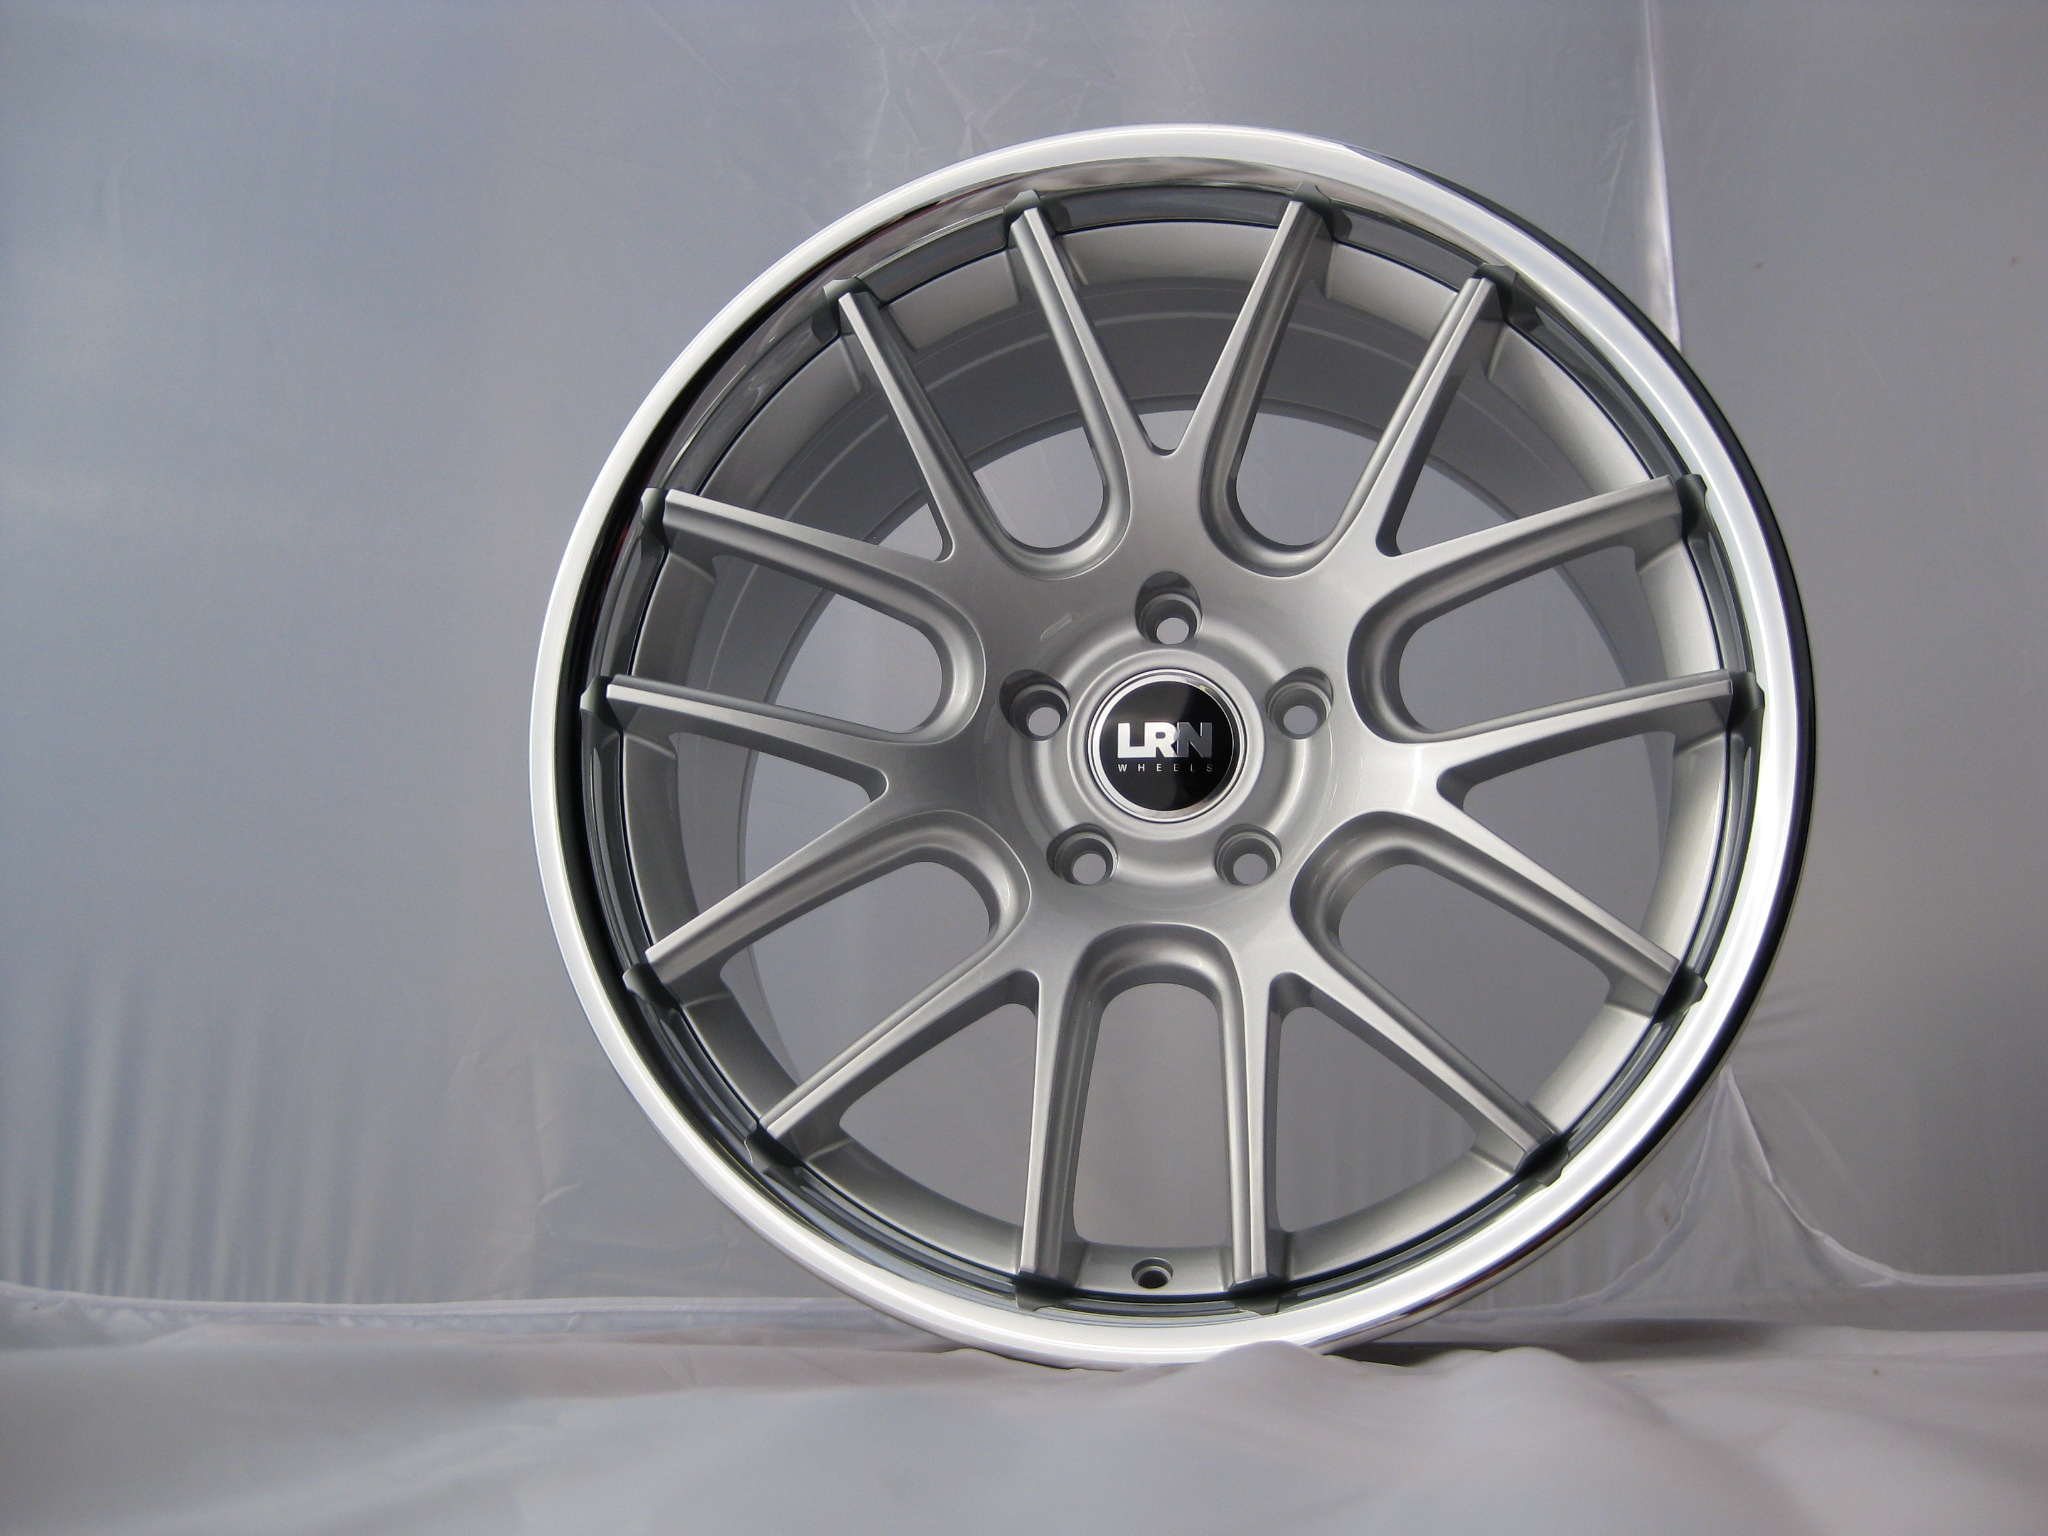 "NEW 19"" LRN VECTOR IN SILVER WITH INOX DISH, MASSIVE 10"" WIDE REAR'S WITH DEEP CONCAVE"